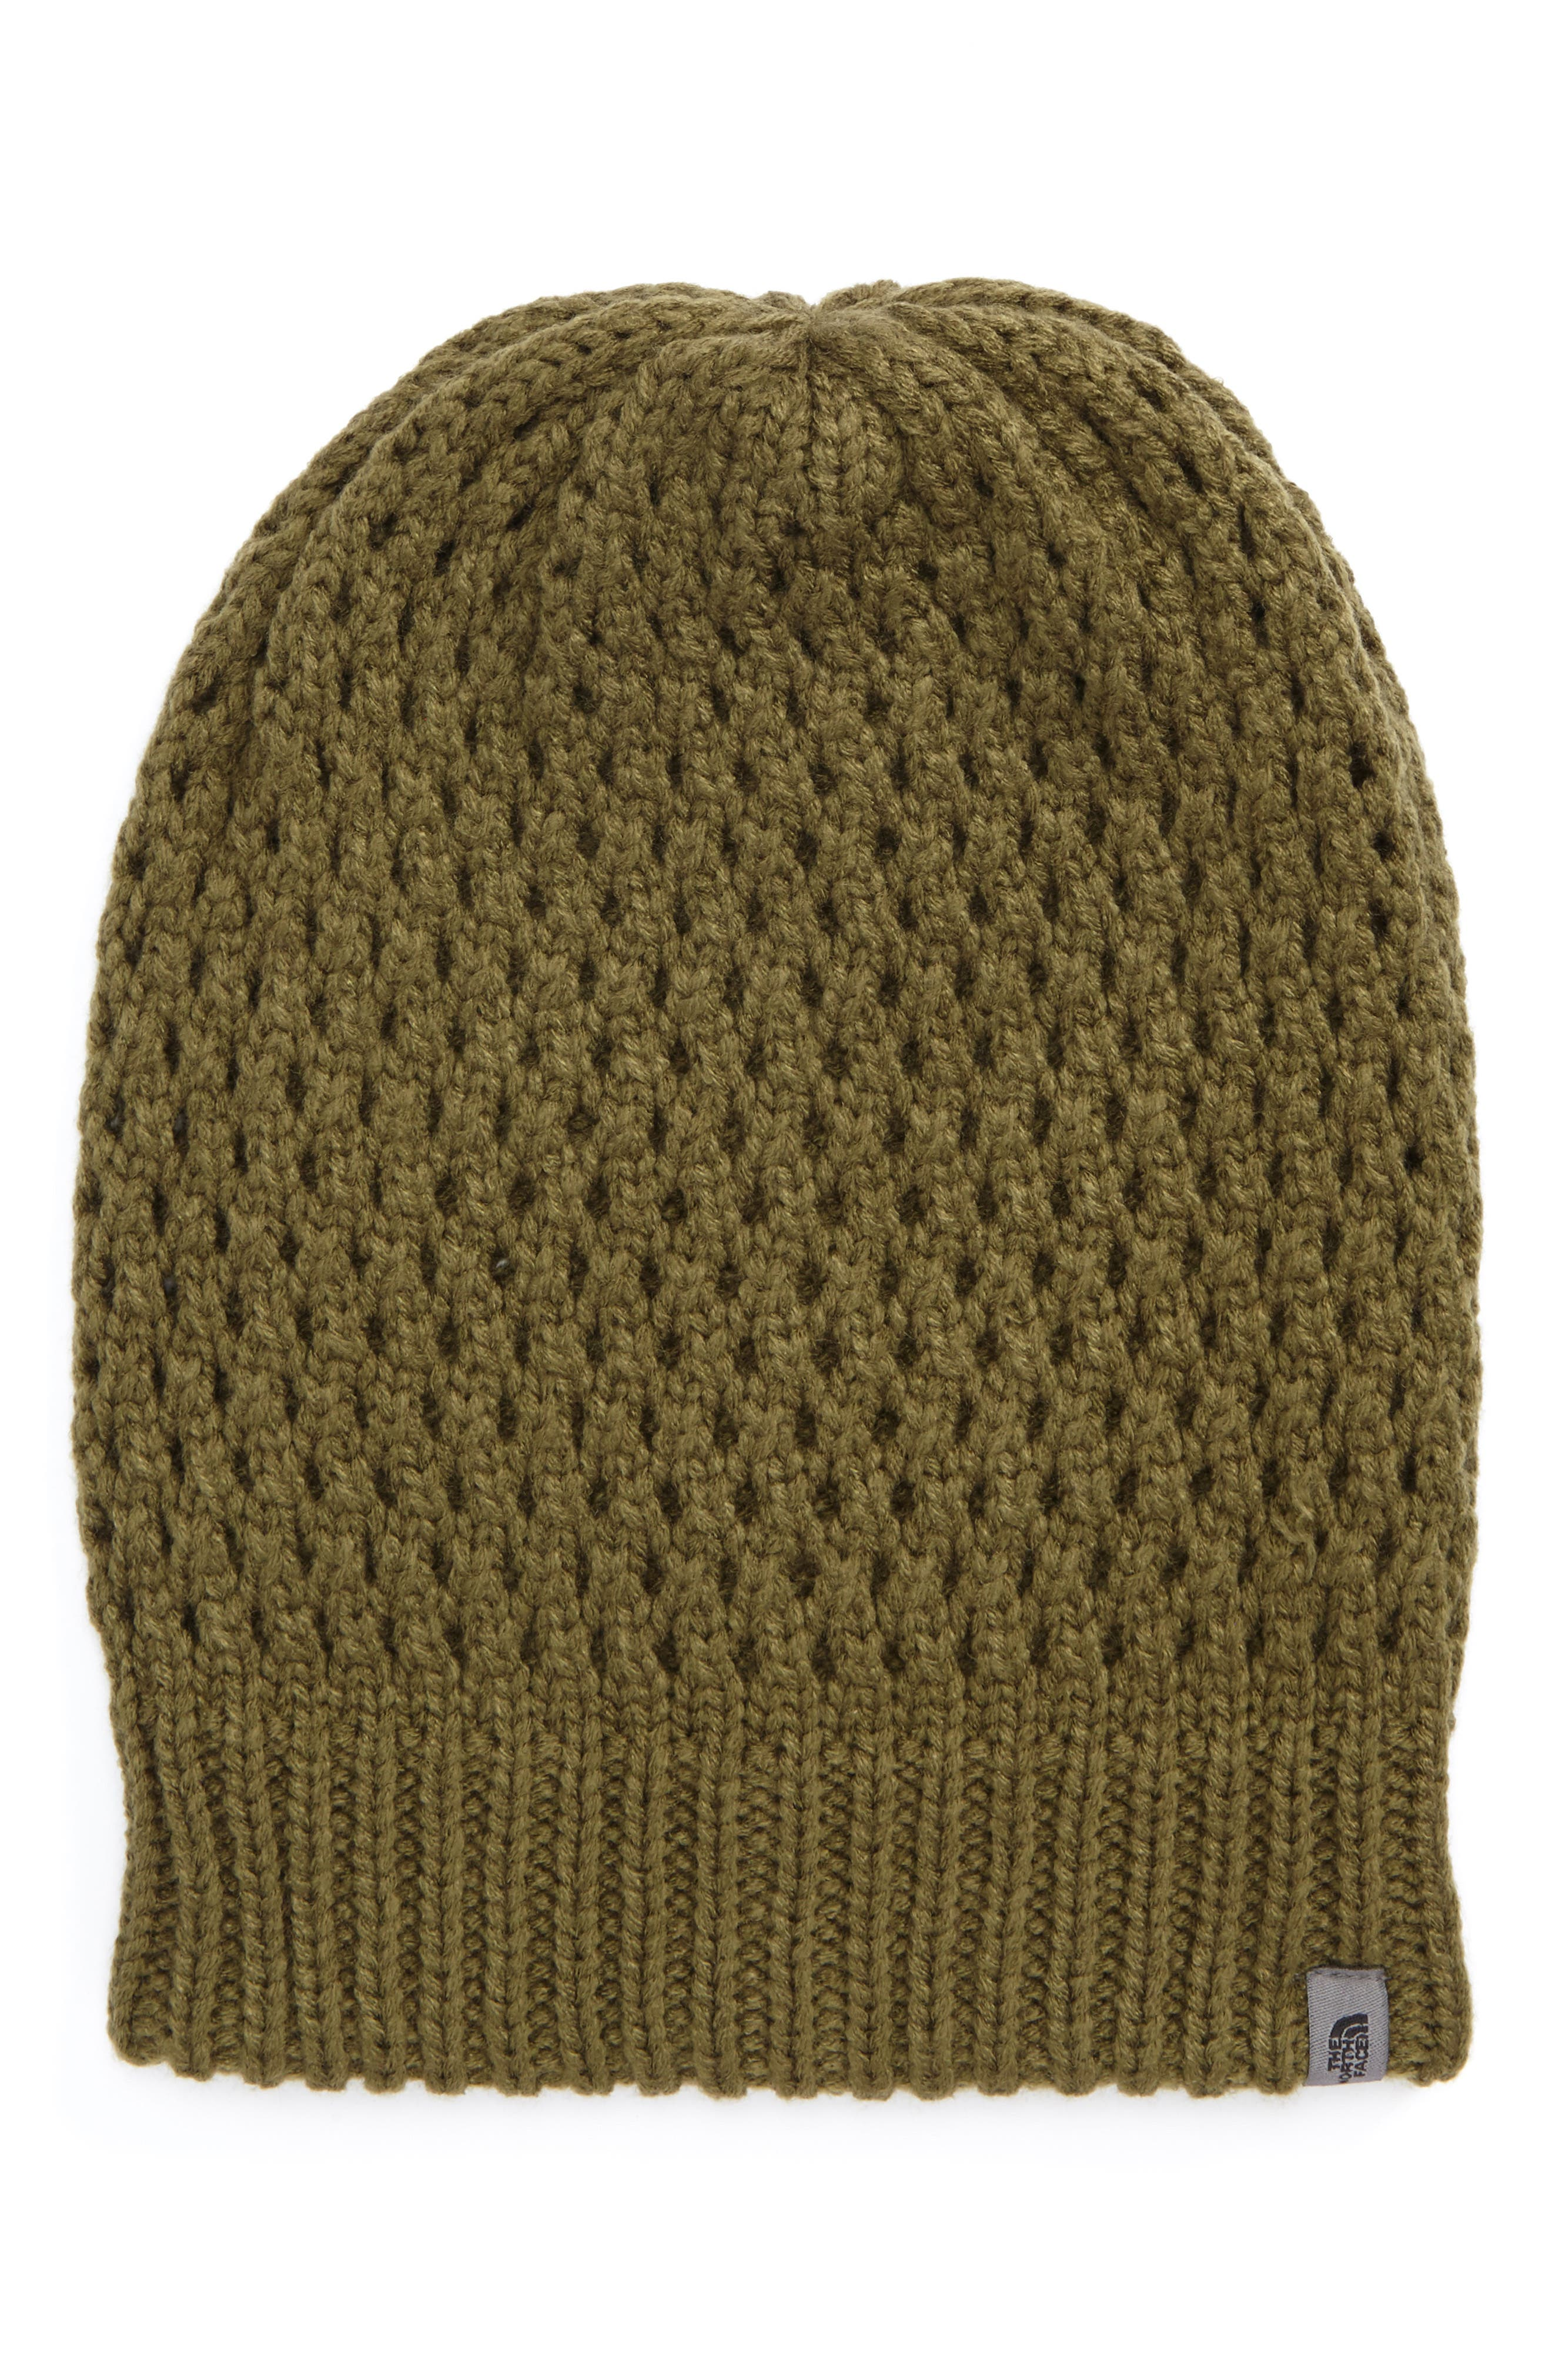 Main Image - The North Face 'Shinsky' Reversible Beanie